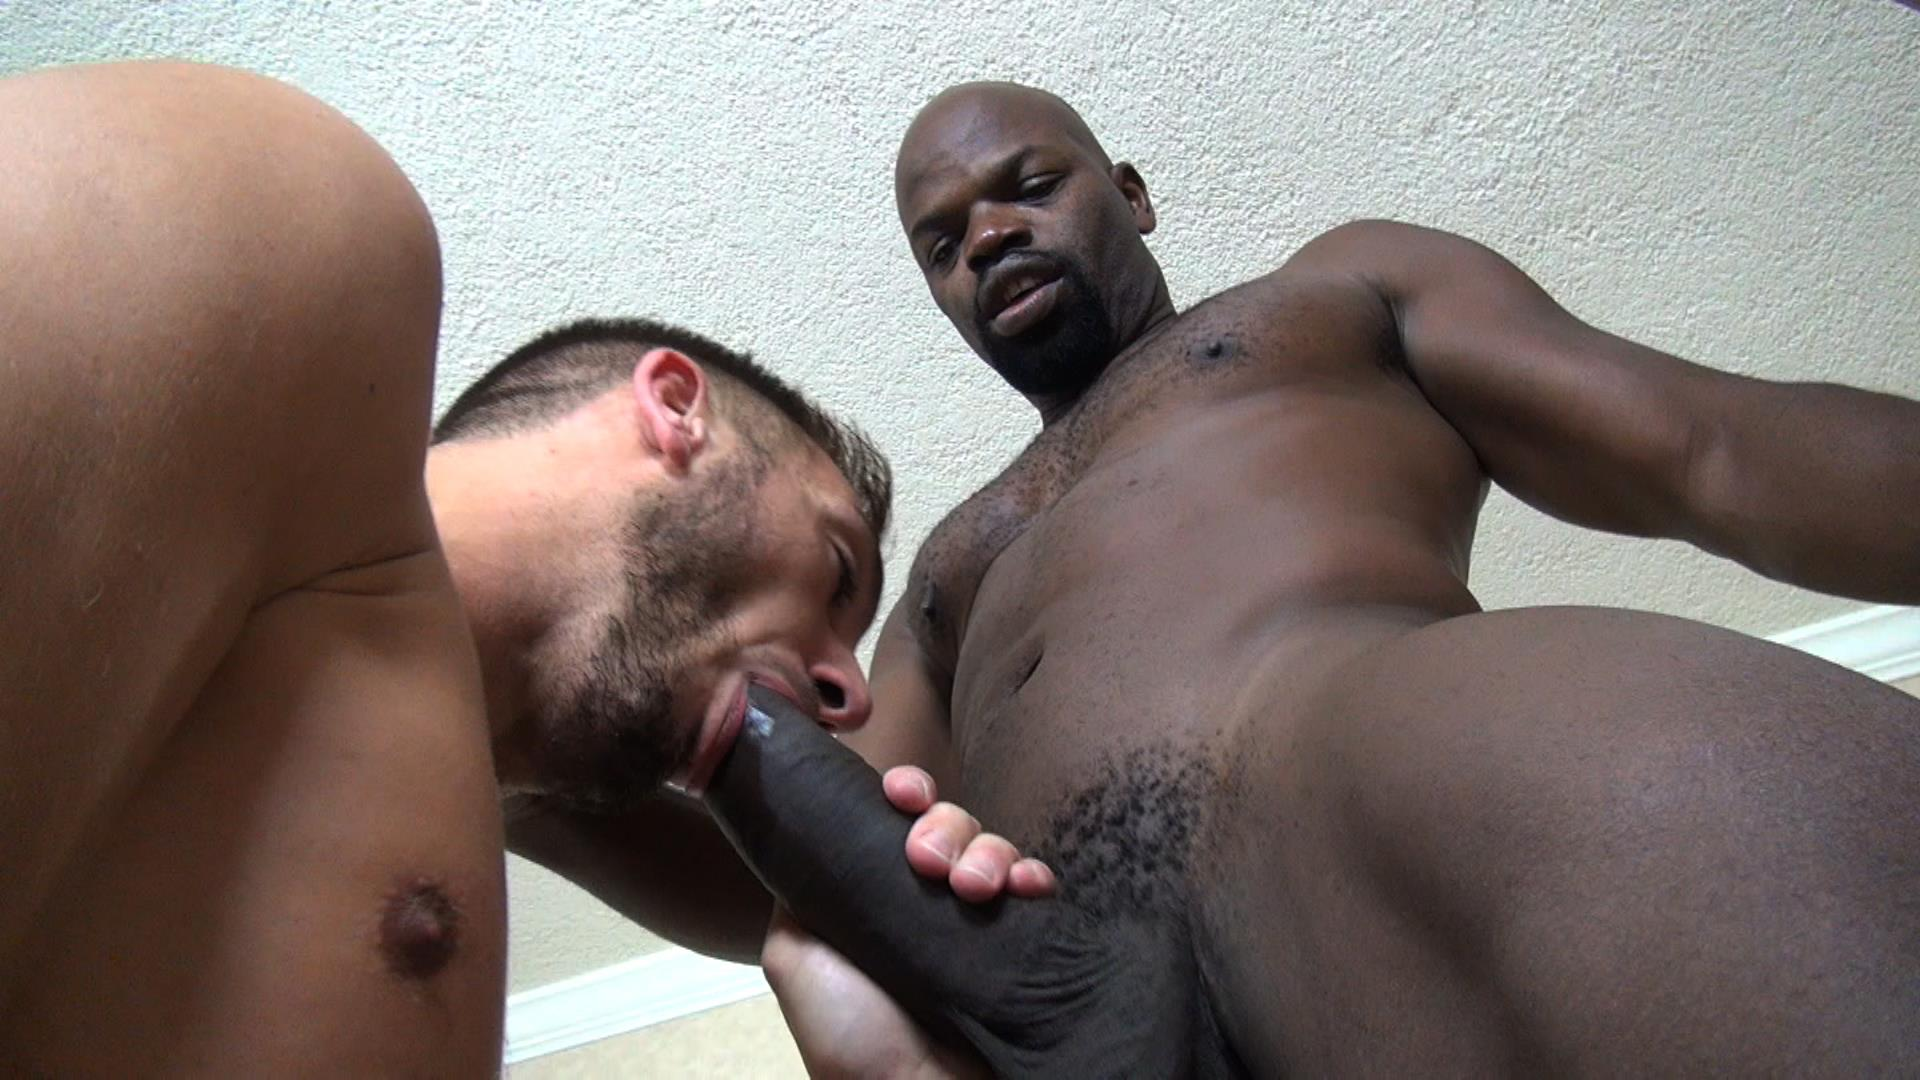 gay begs straight boy to suck his dick